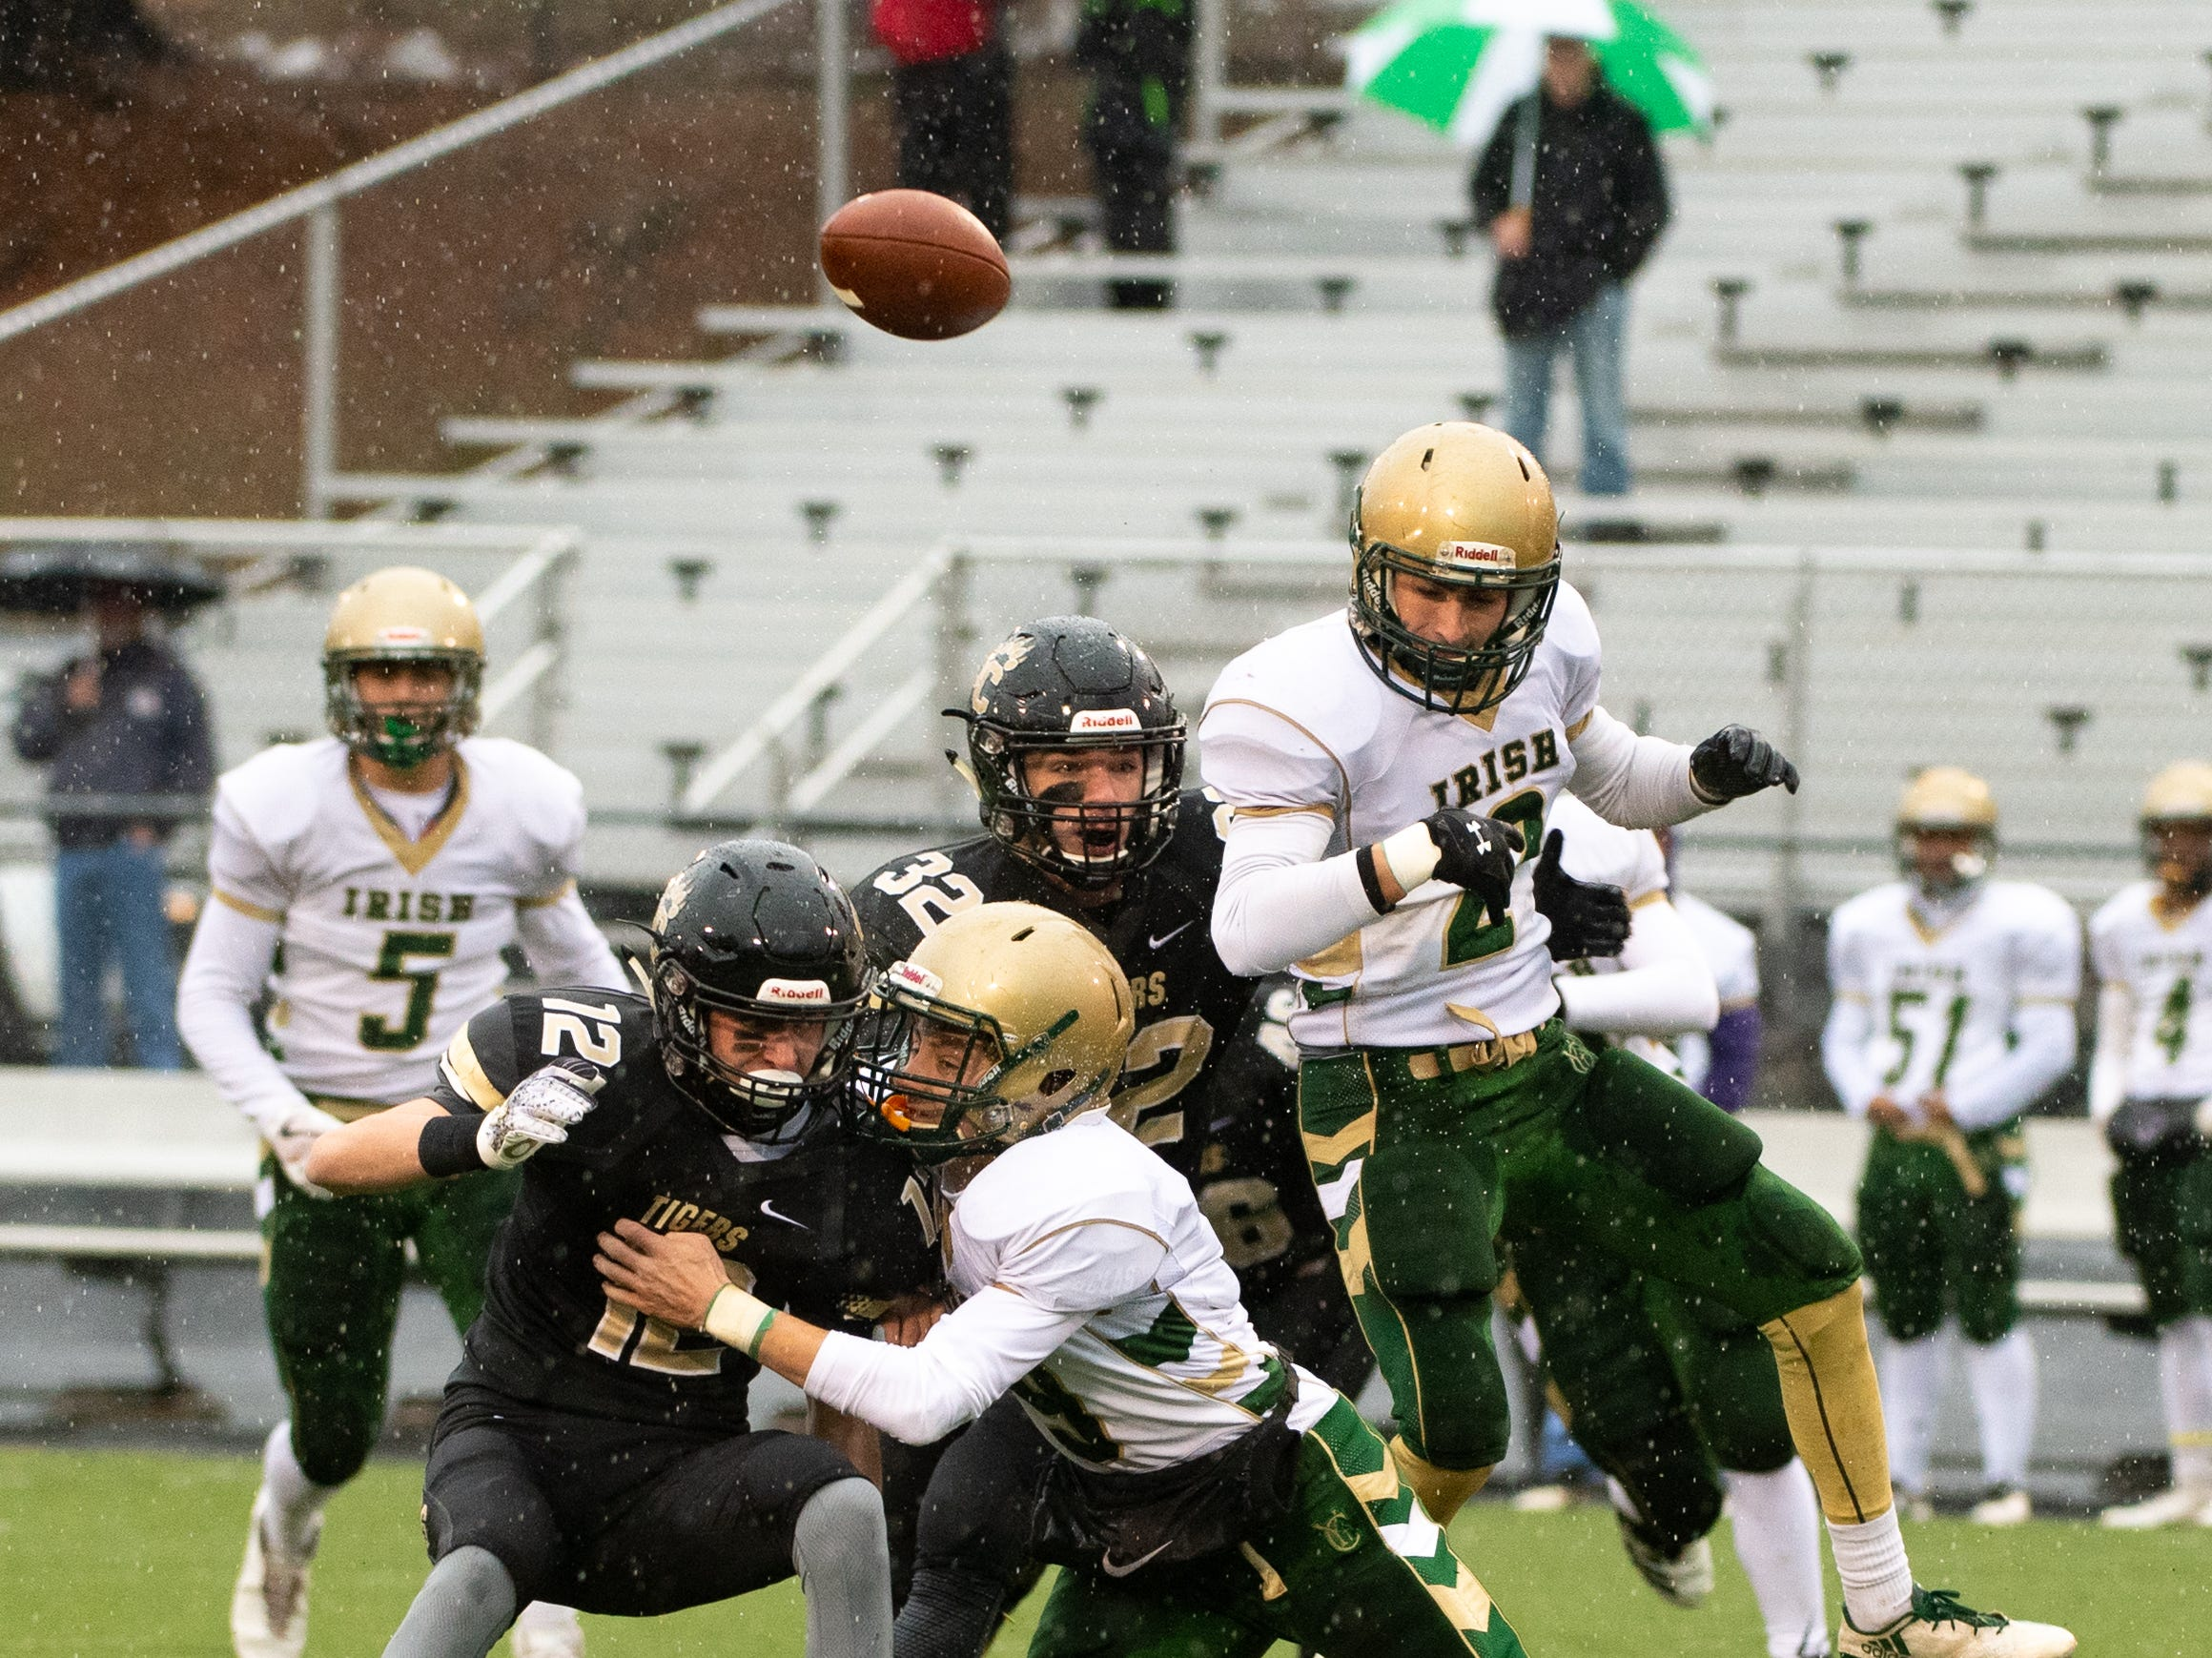 York Catholic fumbles the ball during the state quarter-finals game between York Catholic and Southern Columbia at Shamokin Area High School, November 24, 2018. The Tigers defeated the Irish 56-23.